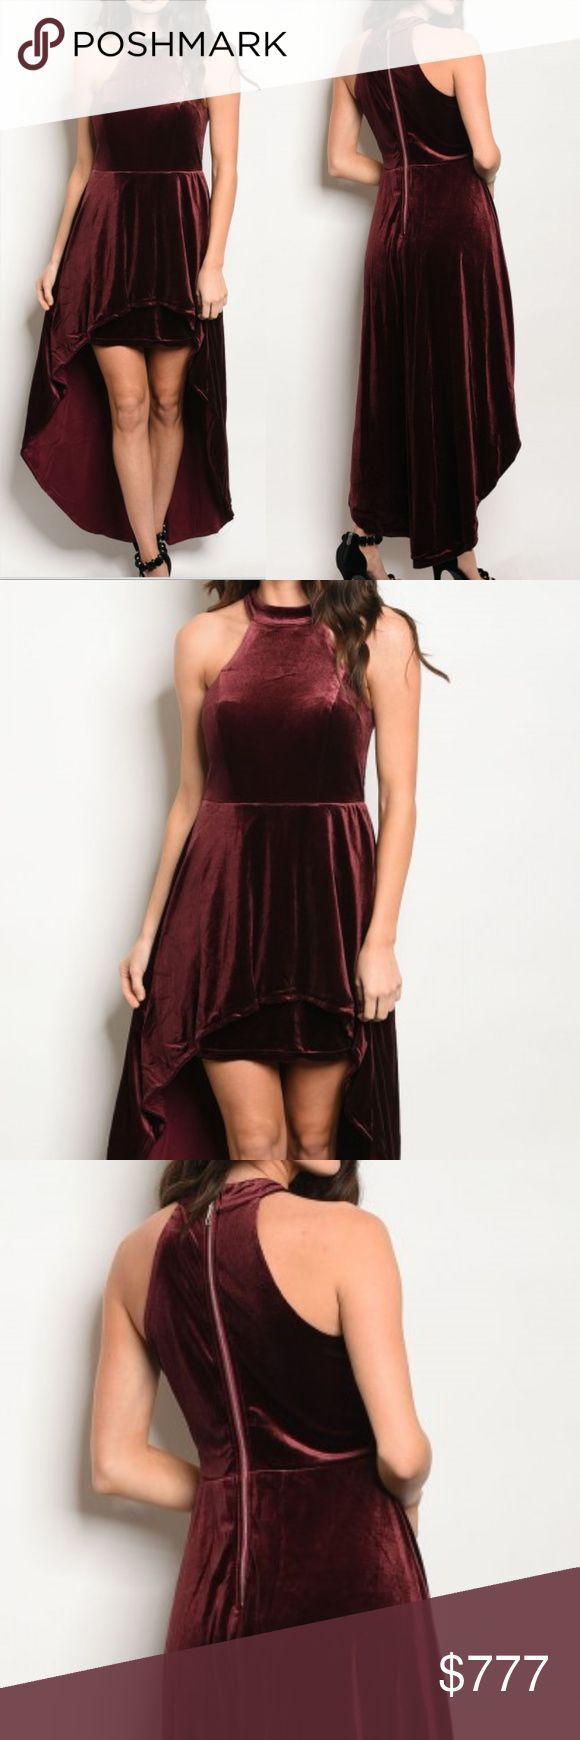 'HOLLY' Burgundy Velvet dress Brand new Boutique item Price is firm  Perfect for the upcoming Holidays and New years, or for a special event /occasion, this stunning Burgundy velvet dress features a double layered skirt/trail, skirt underneath with hi-low flared skirt trail on top and a flattering mock neckline. AS SEEN IN PICS  Zips up in back Fabric Content: 100% POLYESTER Modeled in a size small  * velour formal anniversary party vegas Christmas gift holiday present sleeveless feminine…